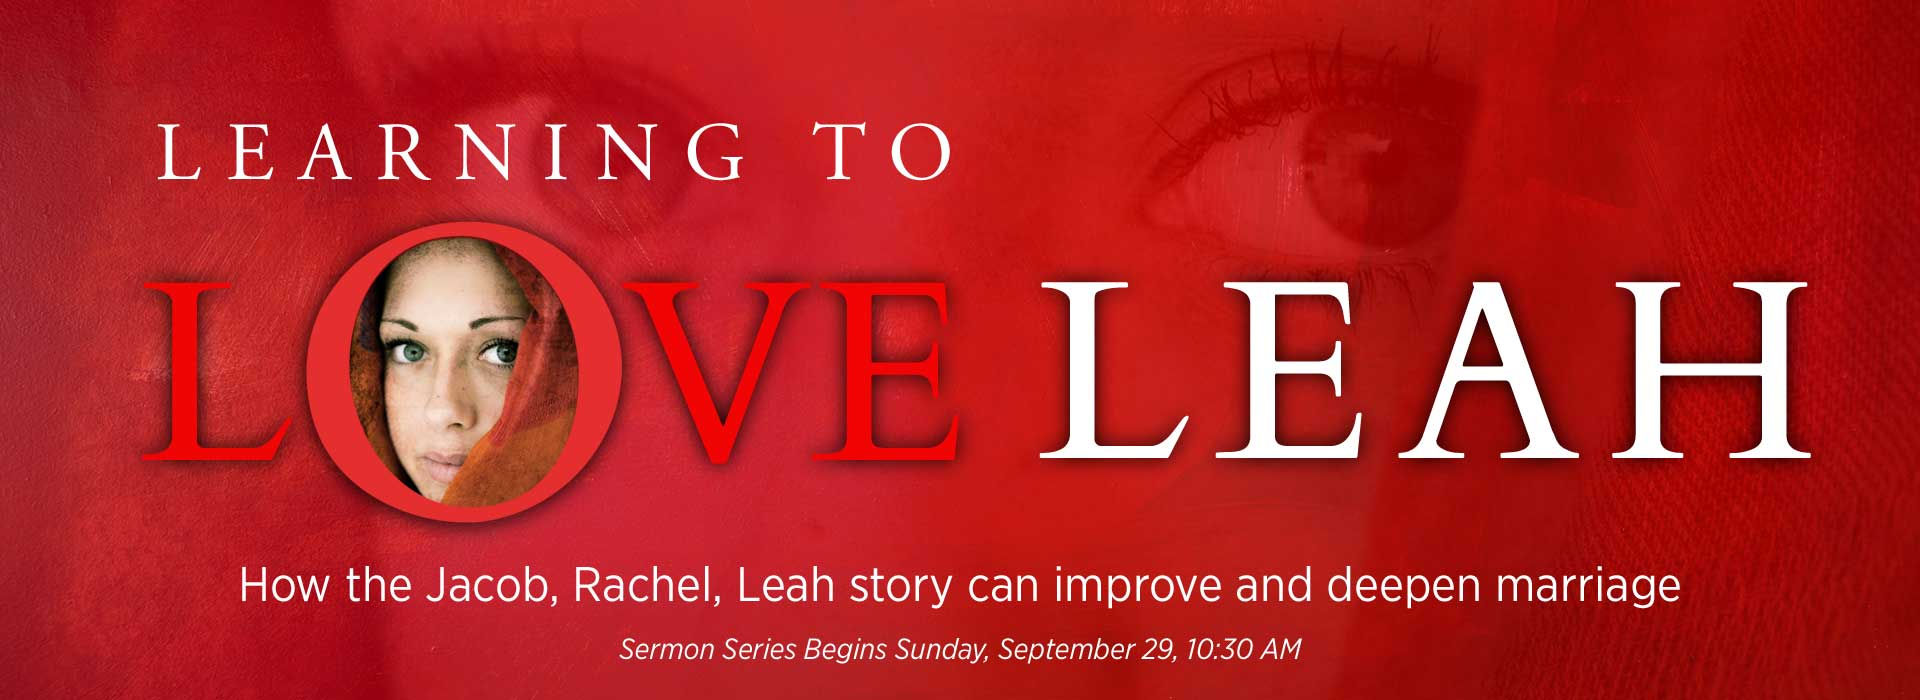 Learning To Love Leah